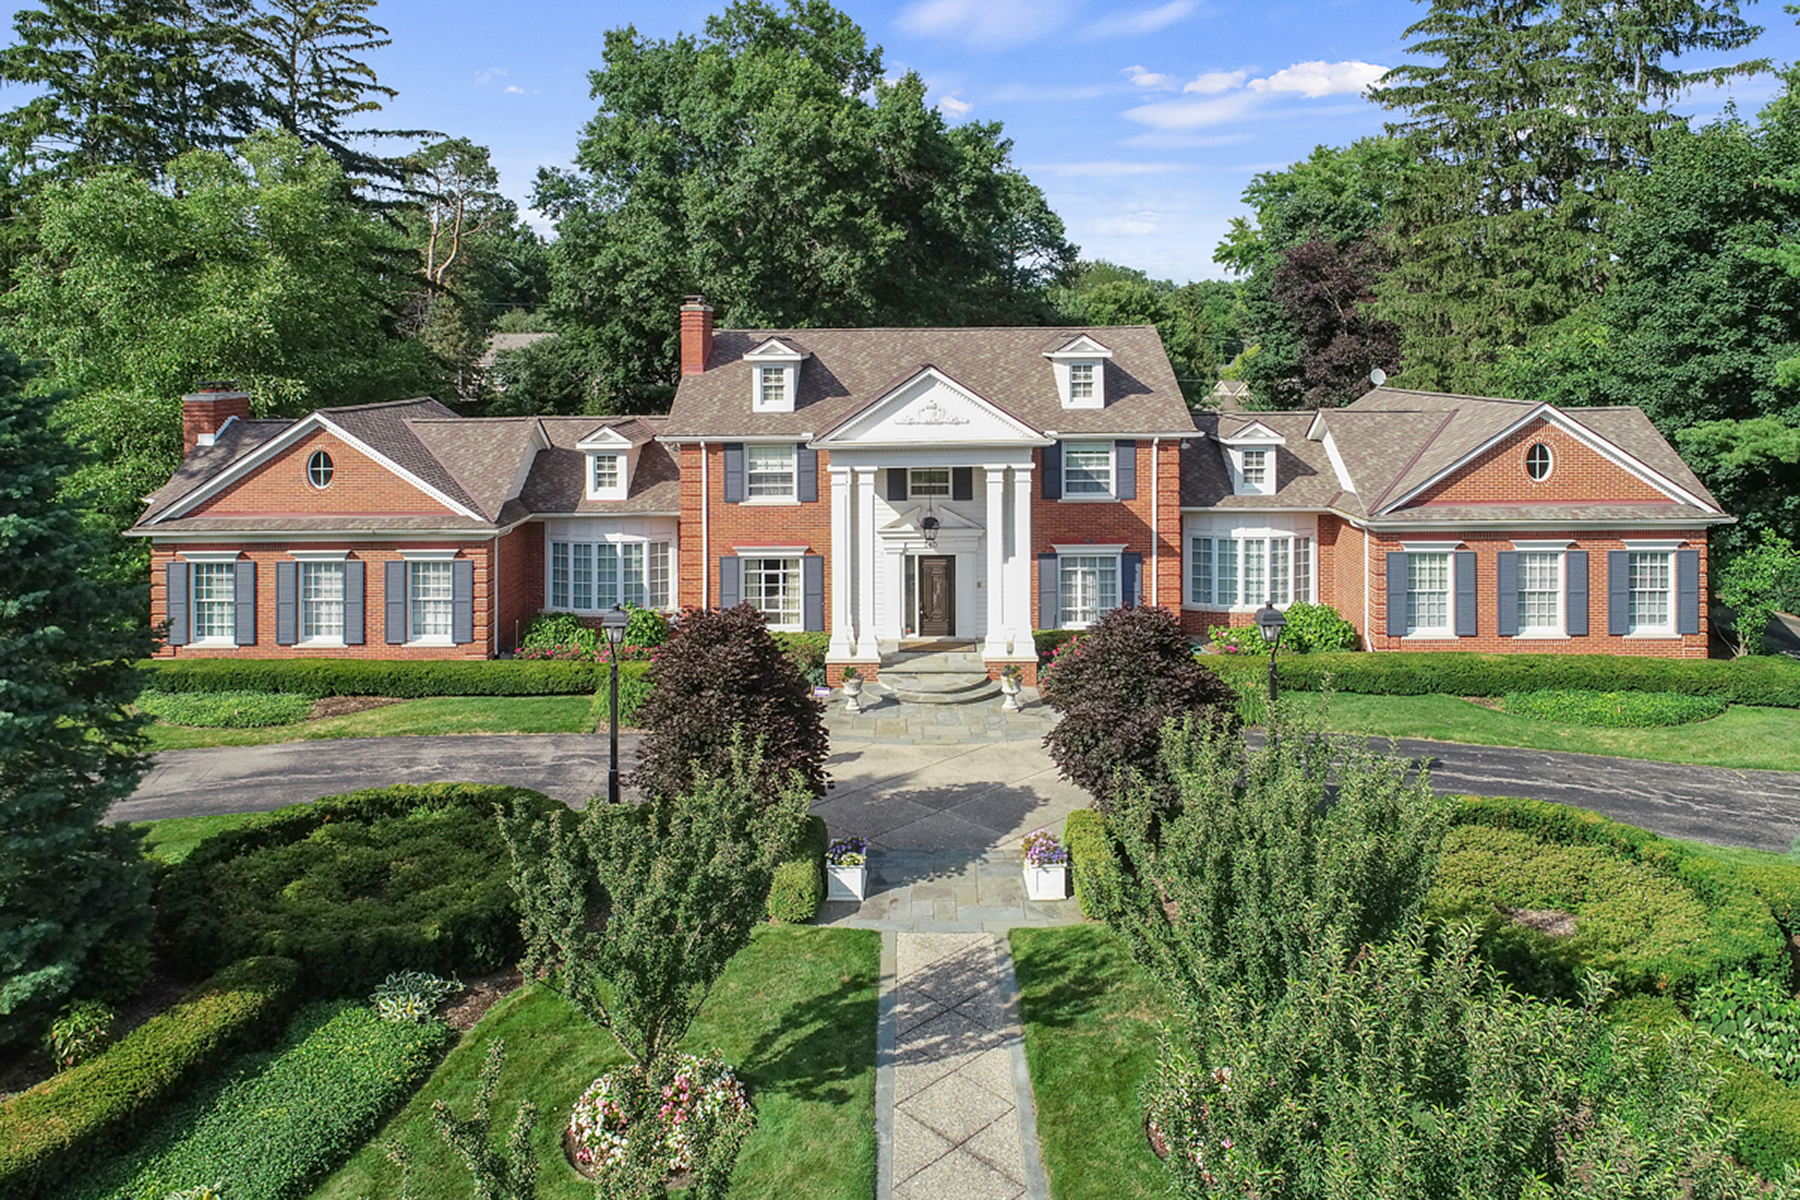 Single Family Homes for Active at Bloomfield Hills 340 Keswick Road Bloomfield Hills, Michigan 48304 United States